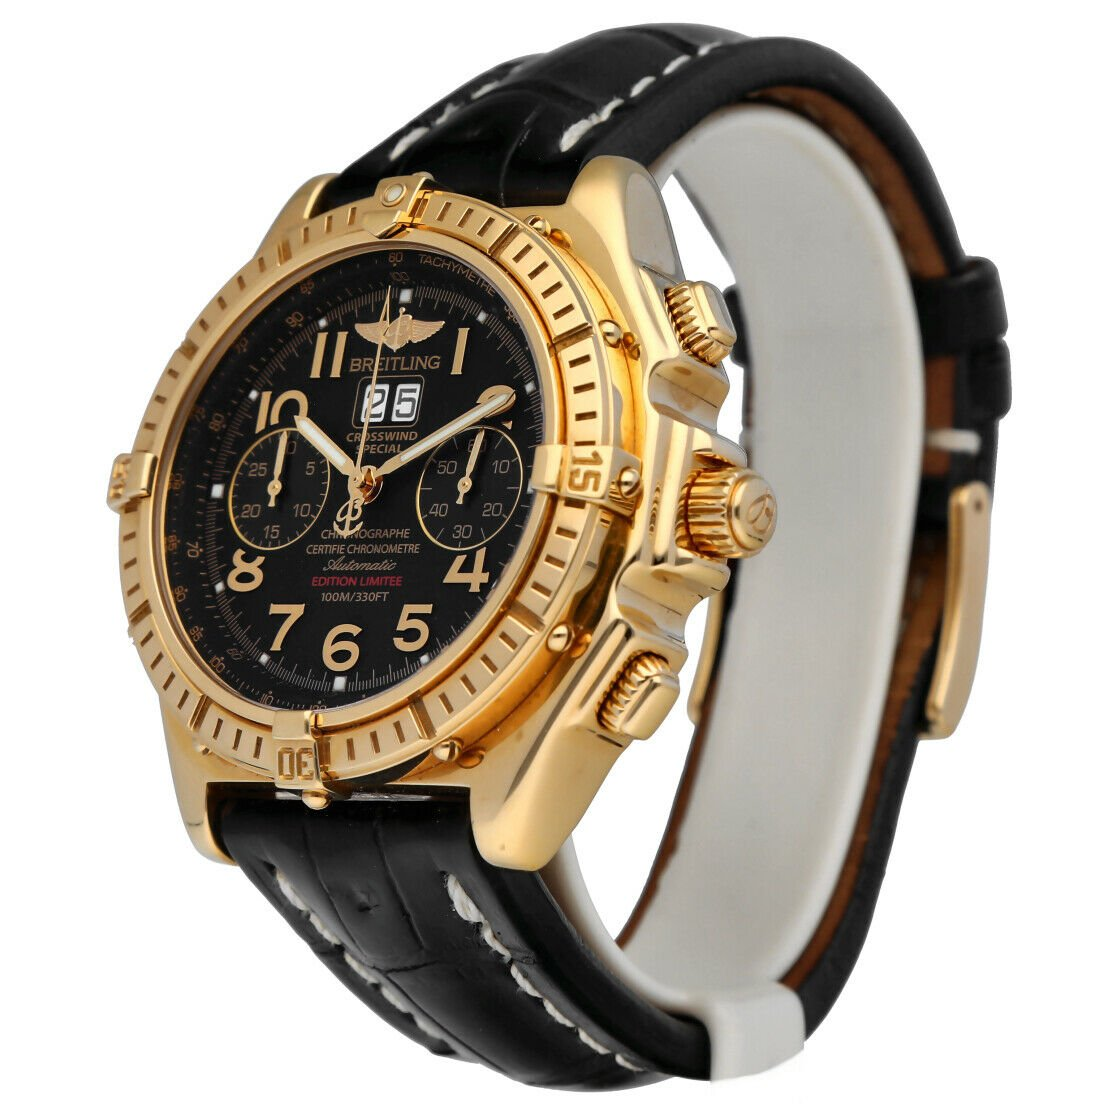 Breitling K44356 Crosswind 18k Yellow Gold Limited Edition Automatic Mens Watch 133527984163 2